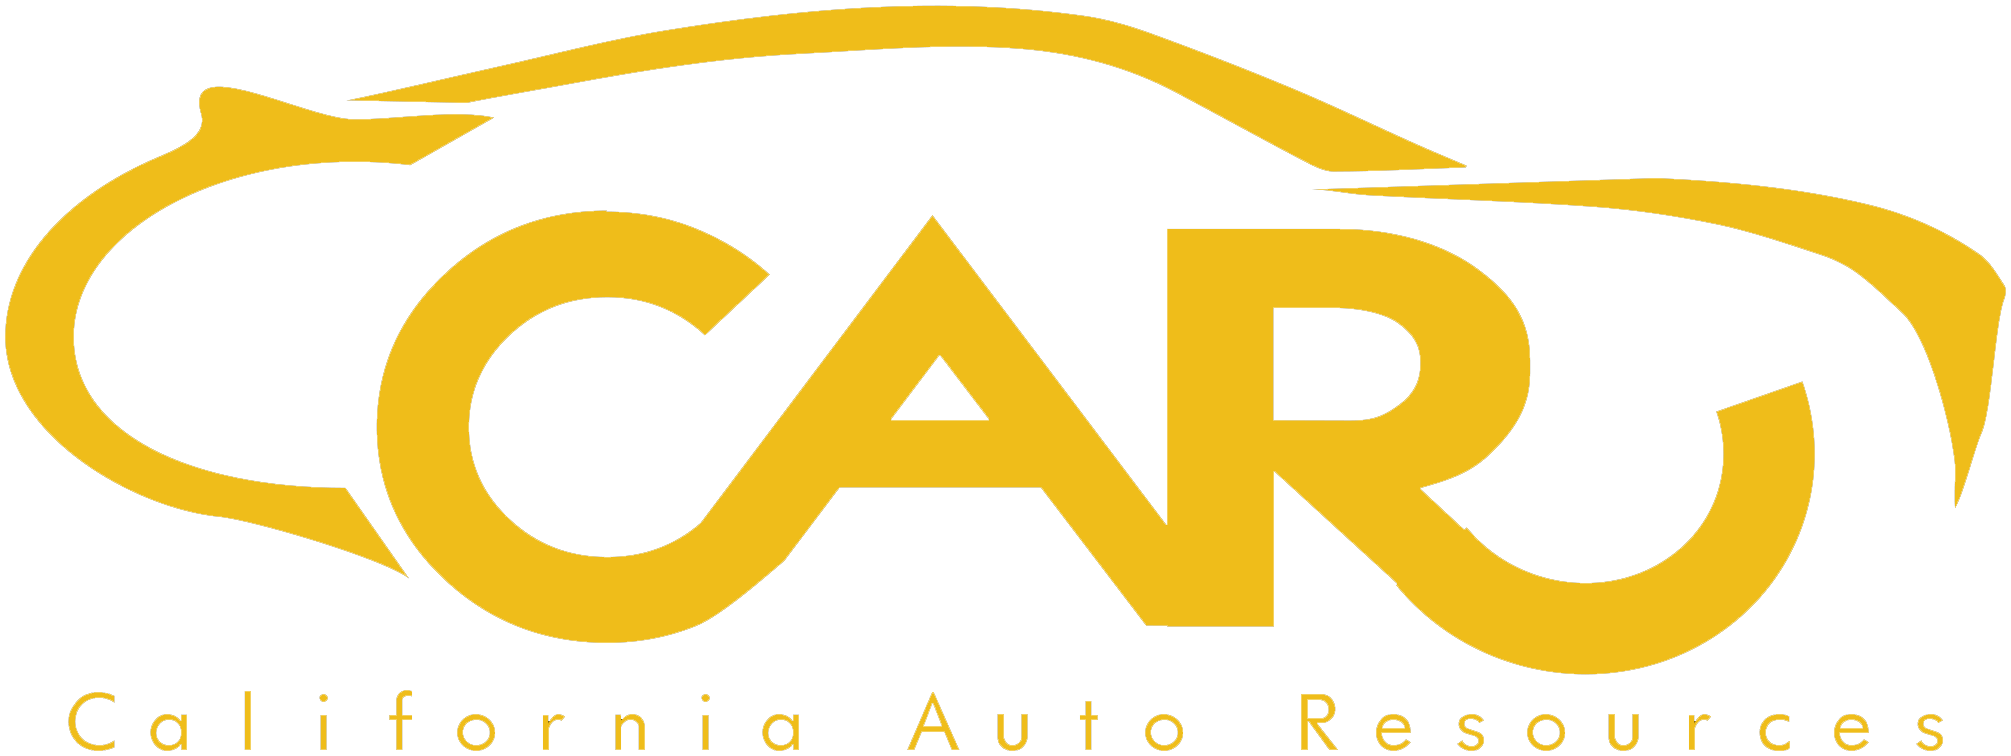 California Auto Resources Logo